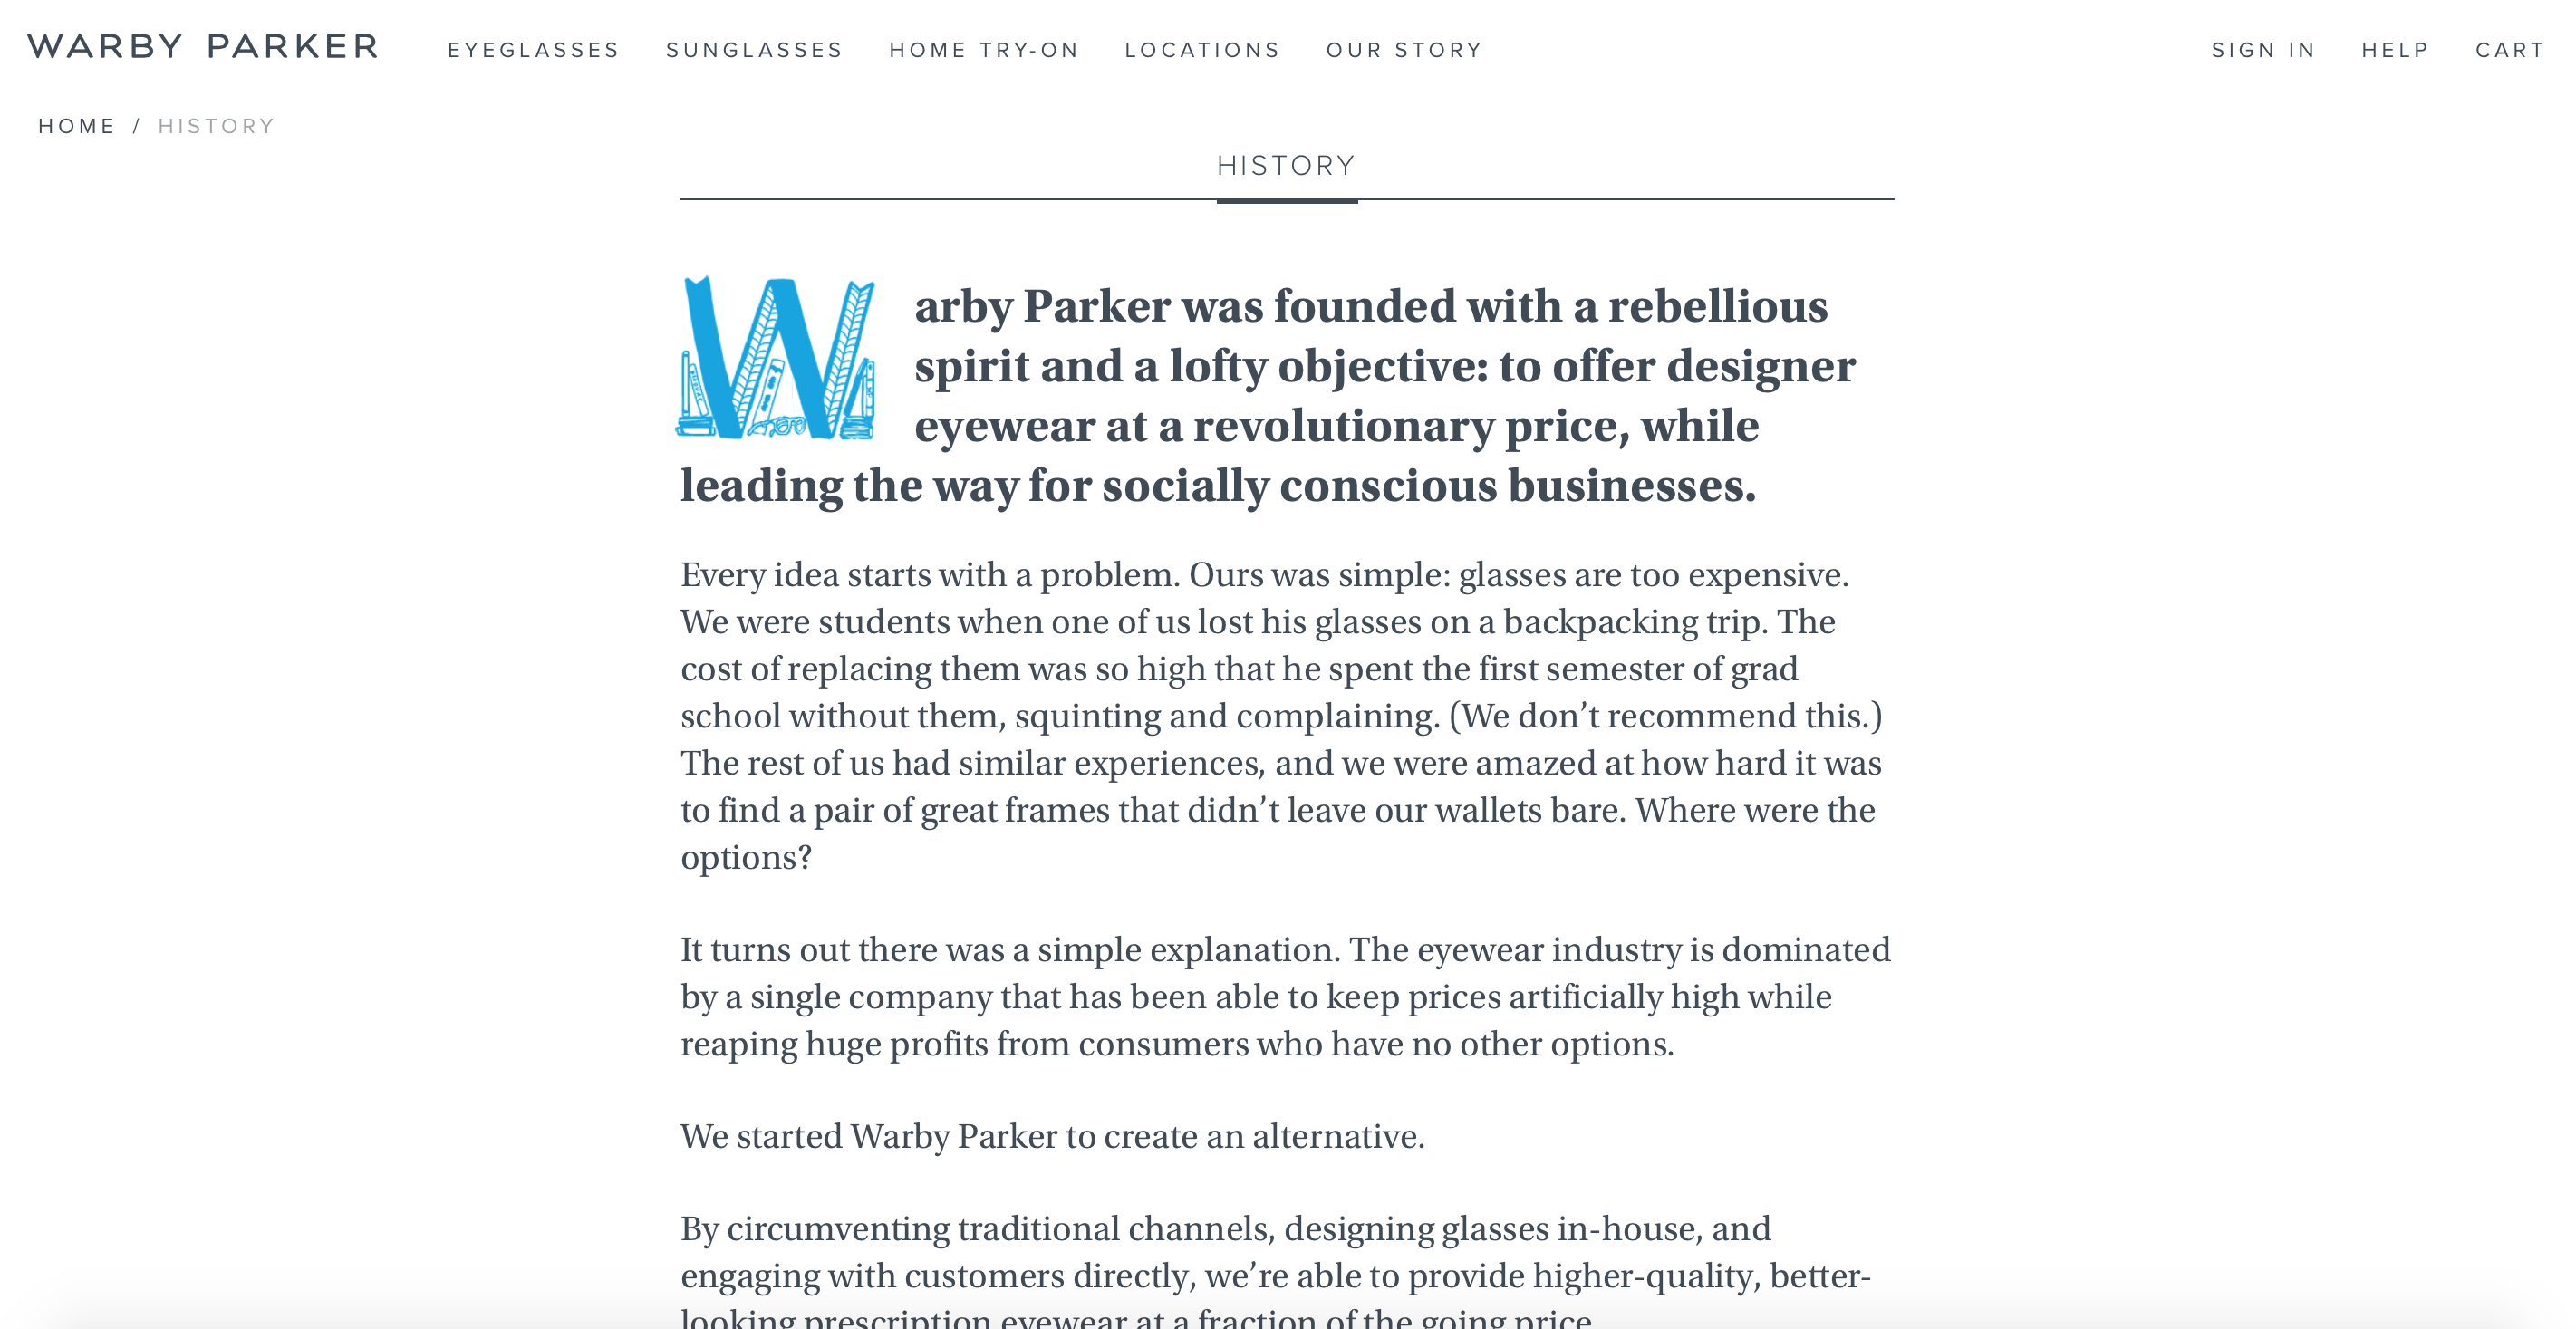 Source: warbyparker.com/history